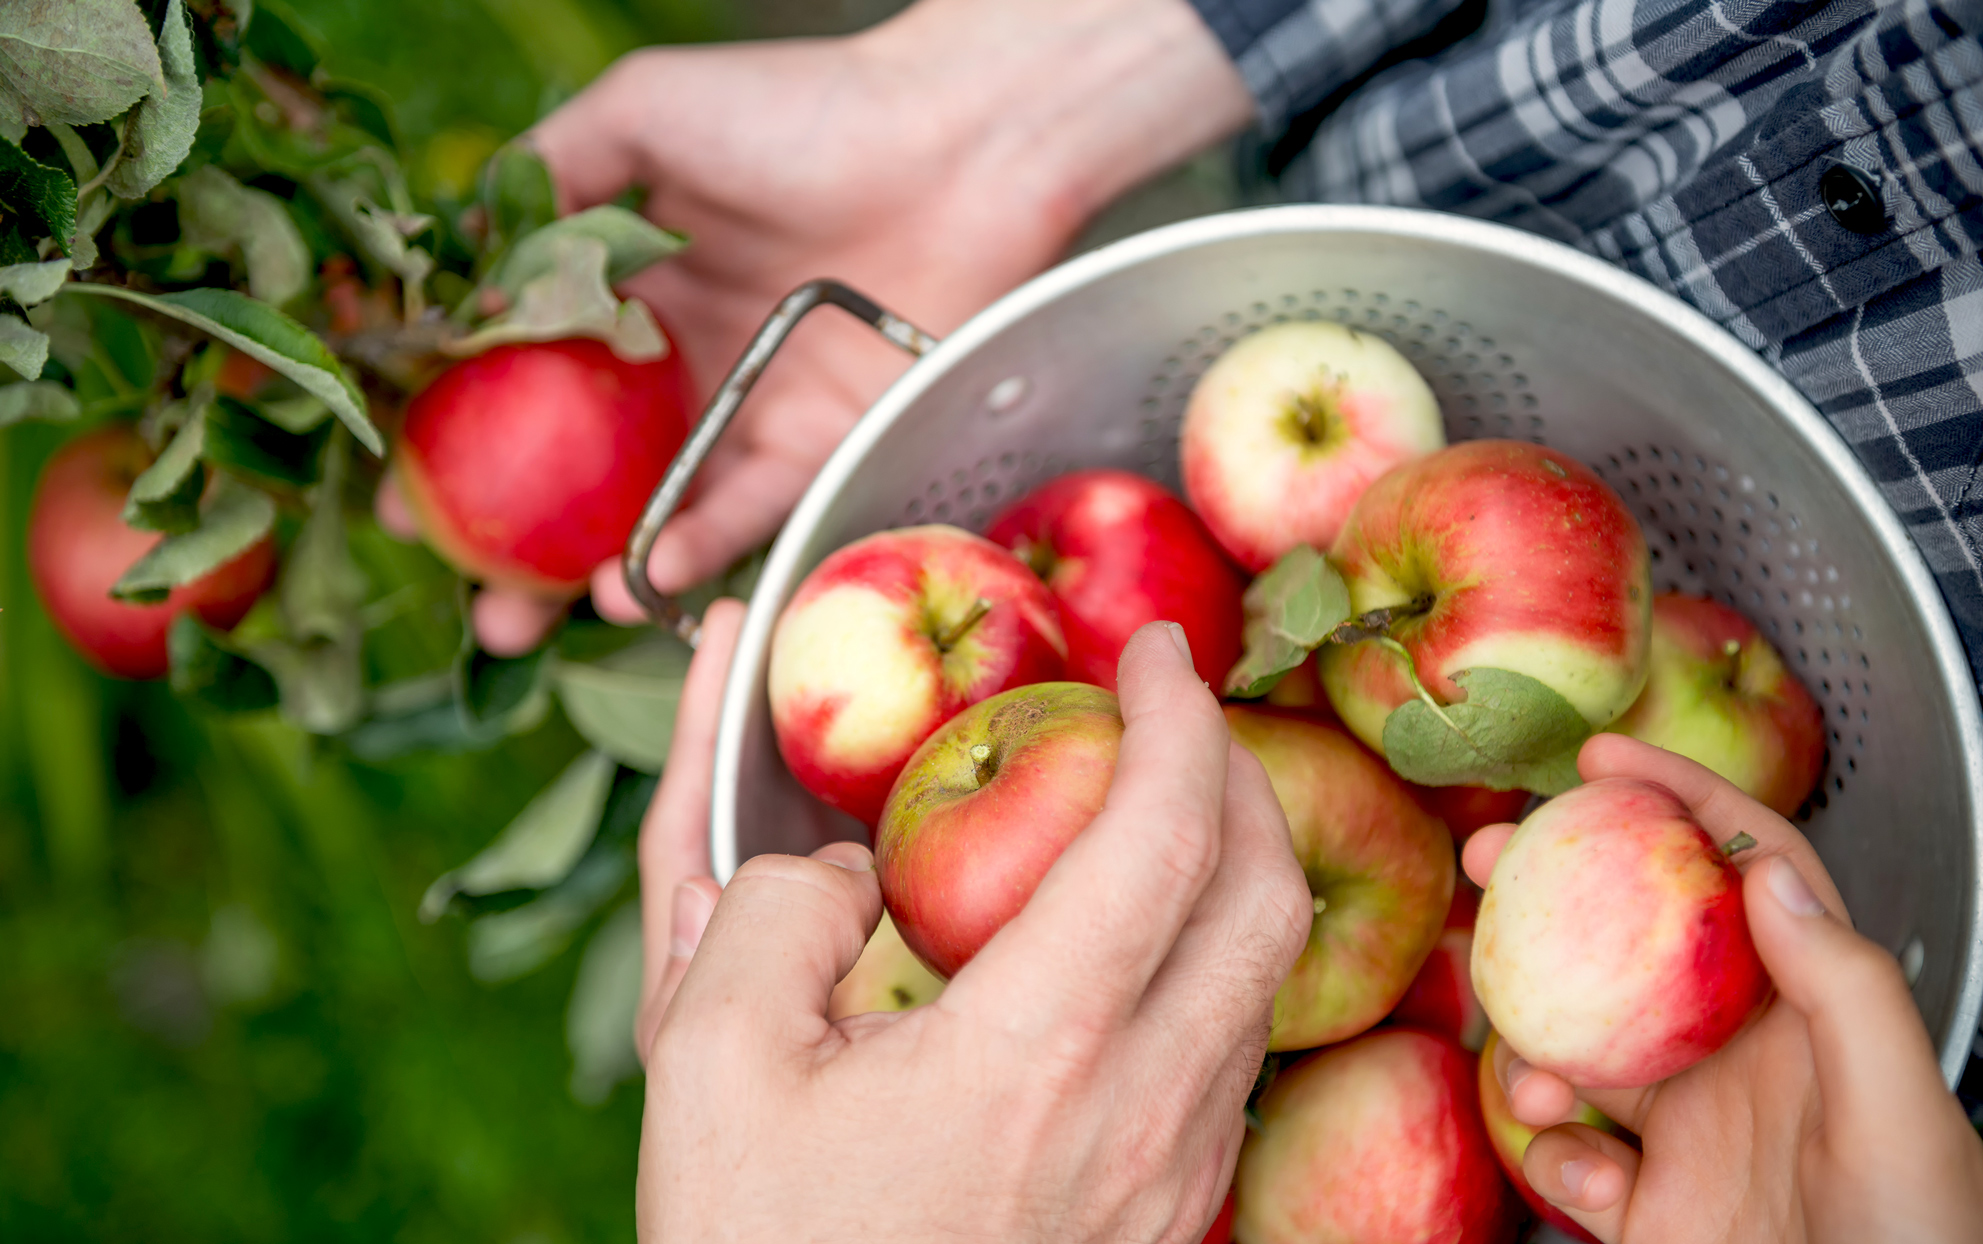 Close up of hands putting picked apples into a colander in an orchard